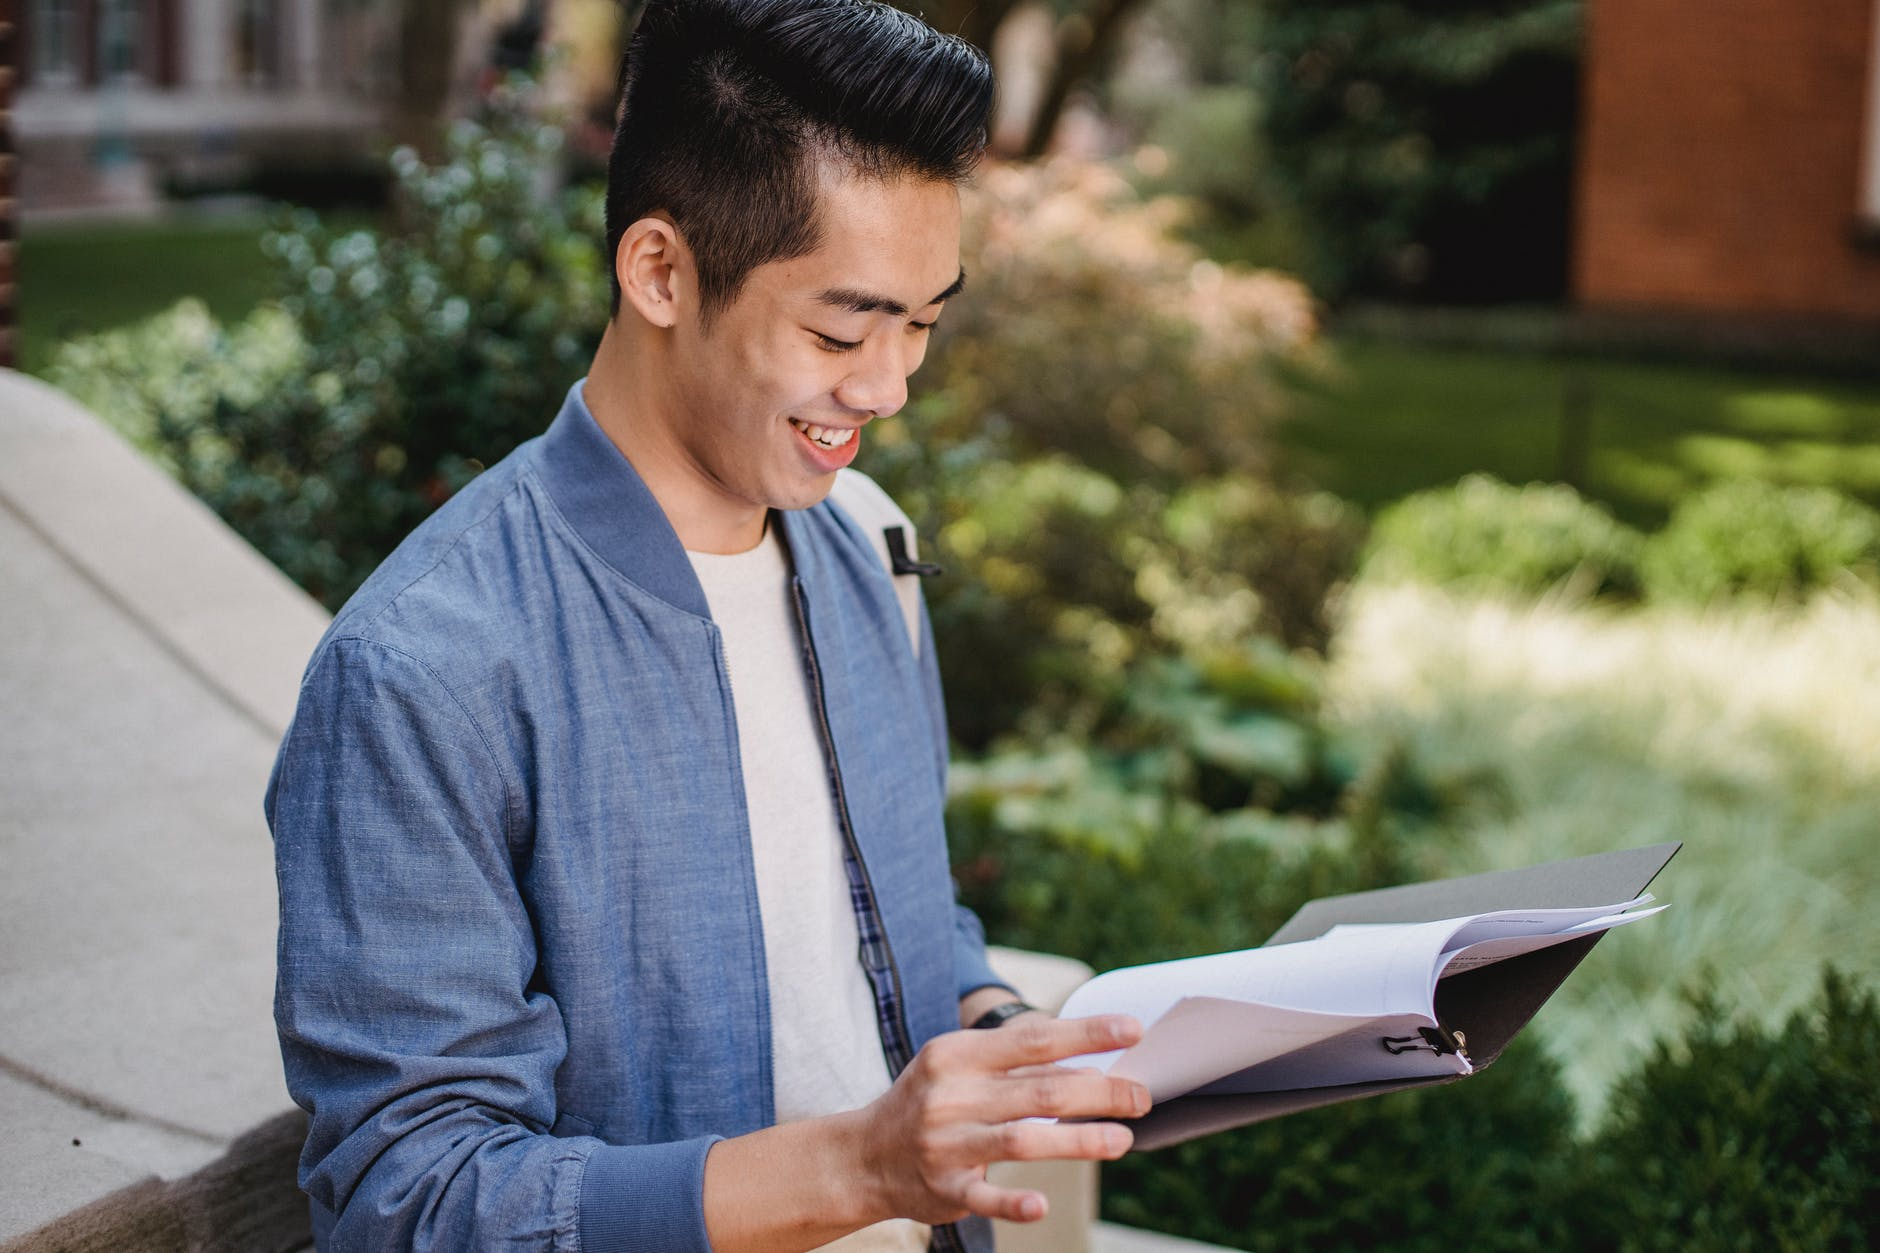 smiling ethnic student reading document in park